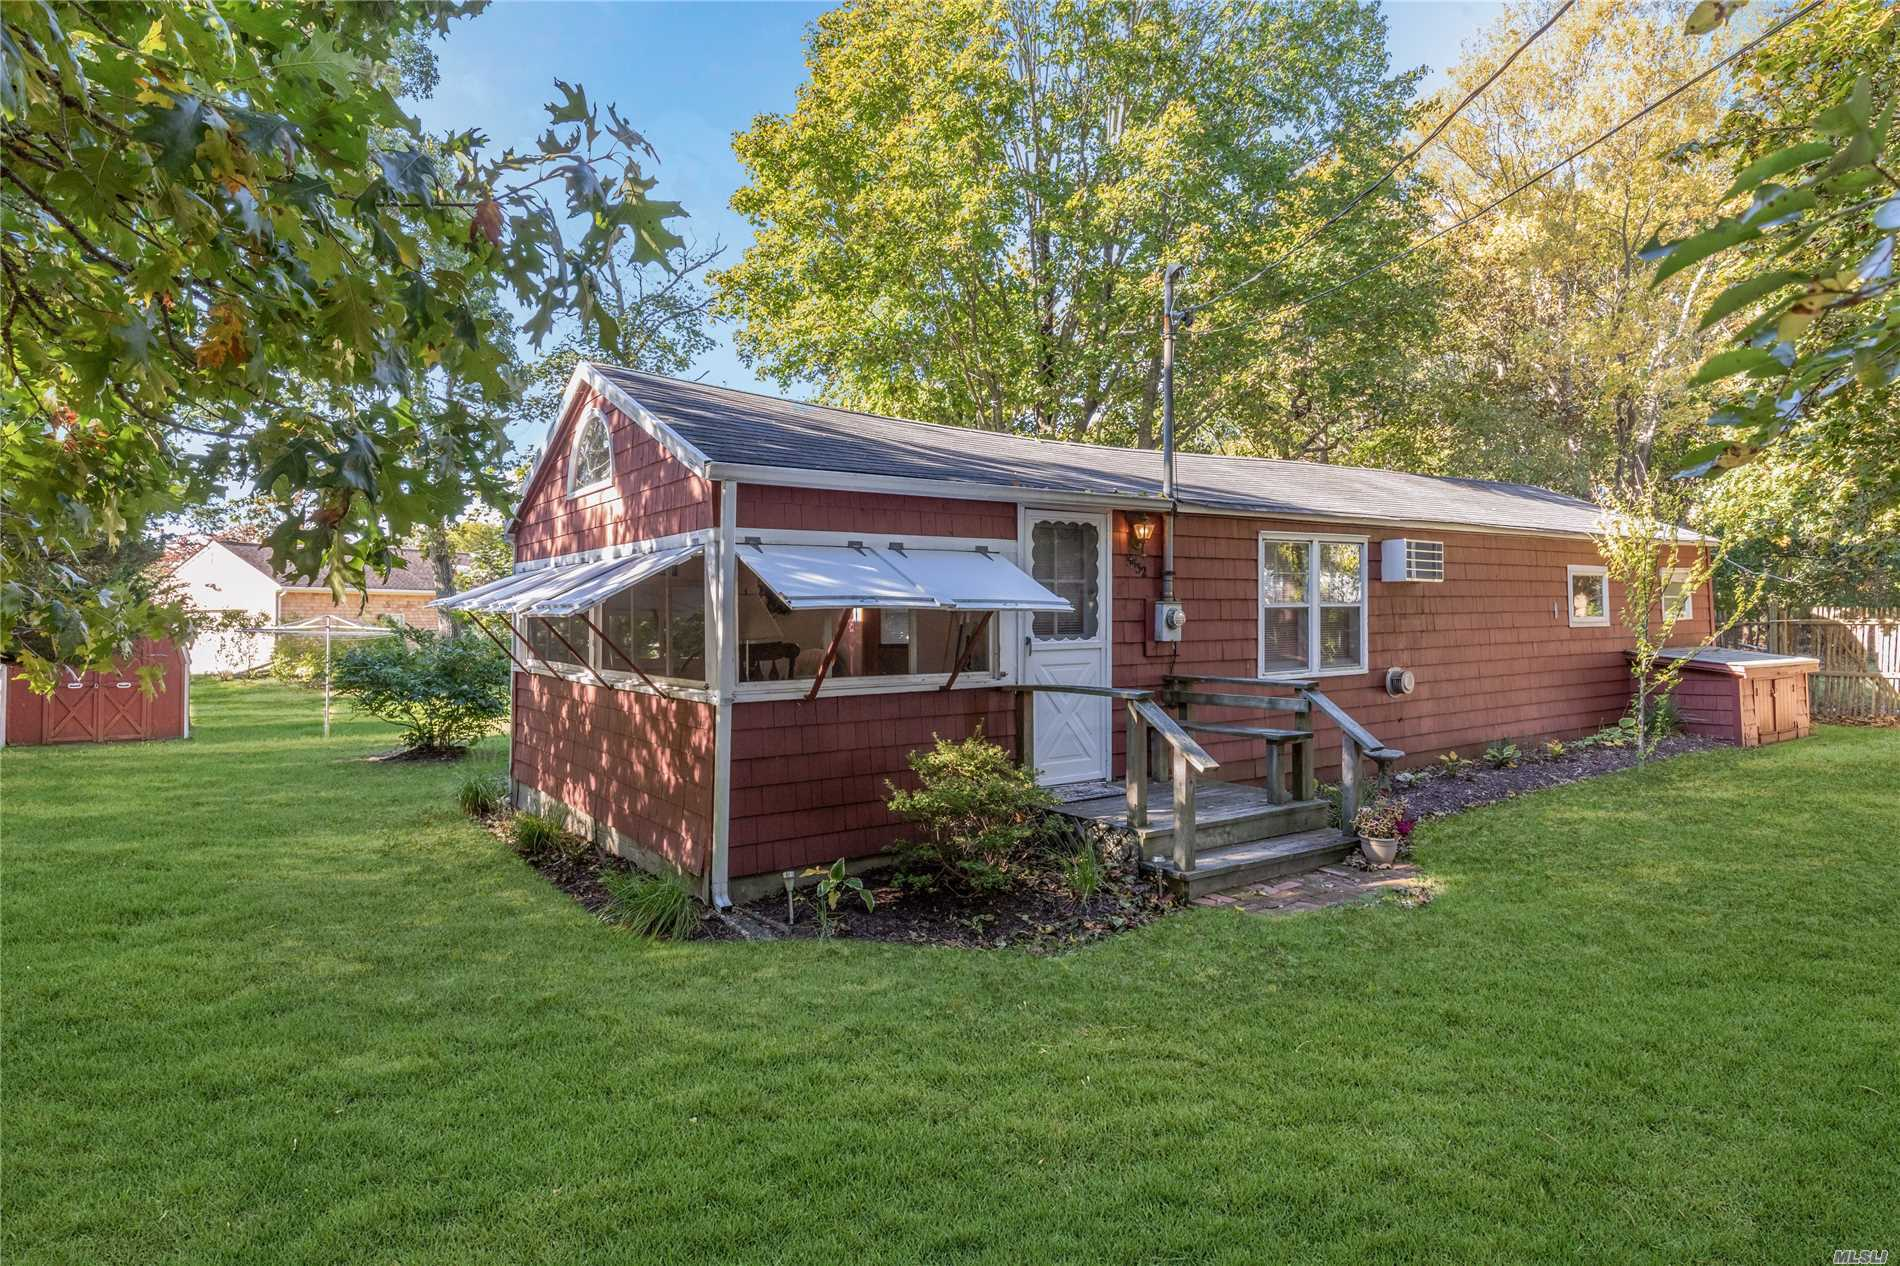 Enjoy The Simple Life! Neat And Complete Summer Cottage Reminiscent Of Days Gone By. Use As Is Or Build A New Home And Keep This As An Accessory Apartment! Private Secluded Location In Bayview.